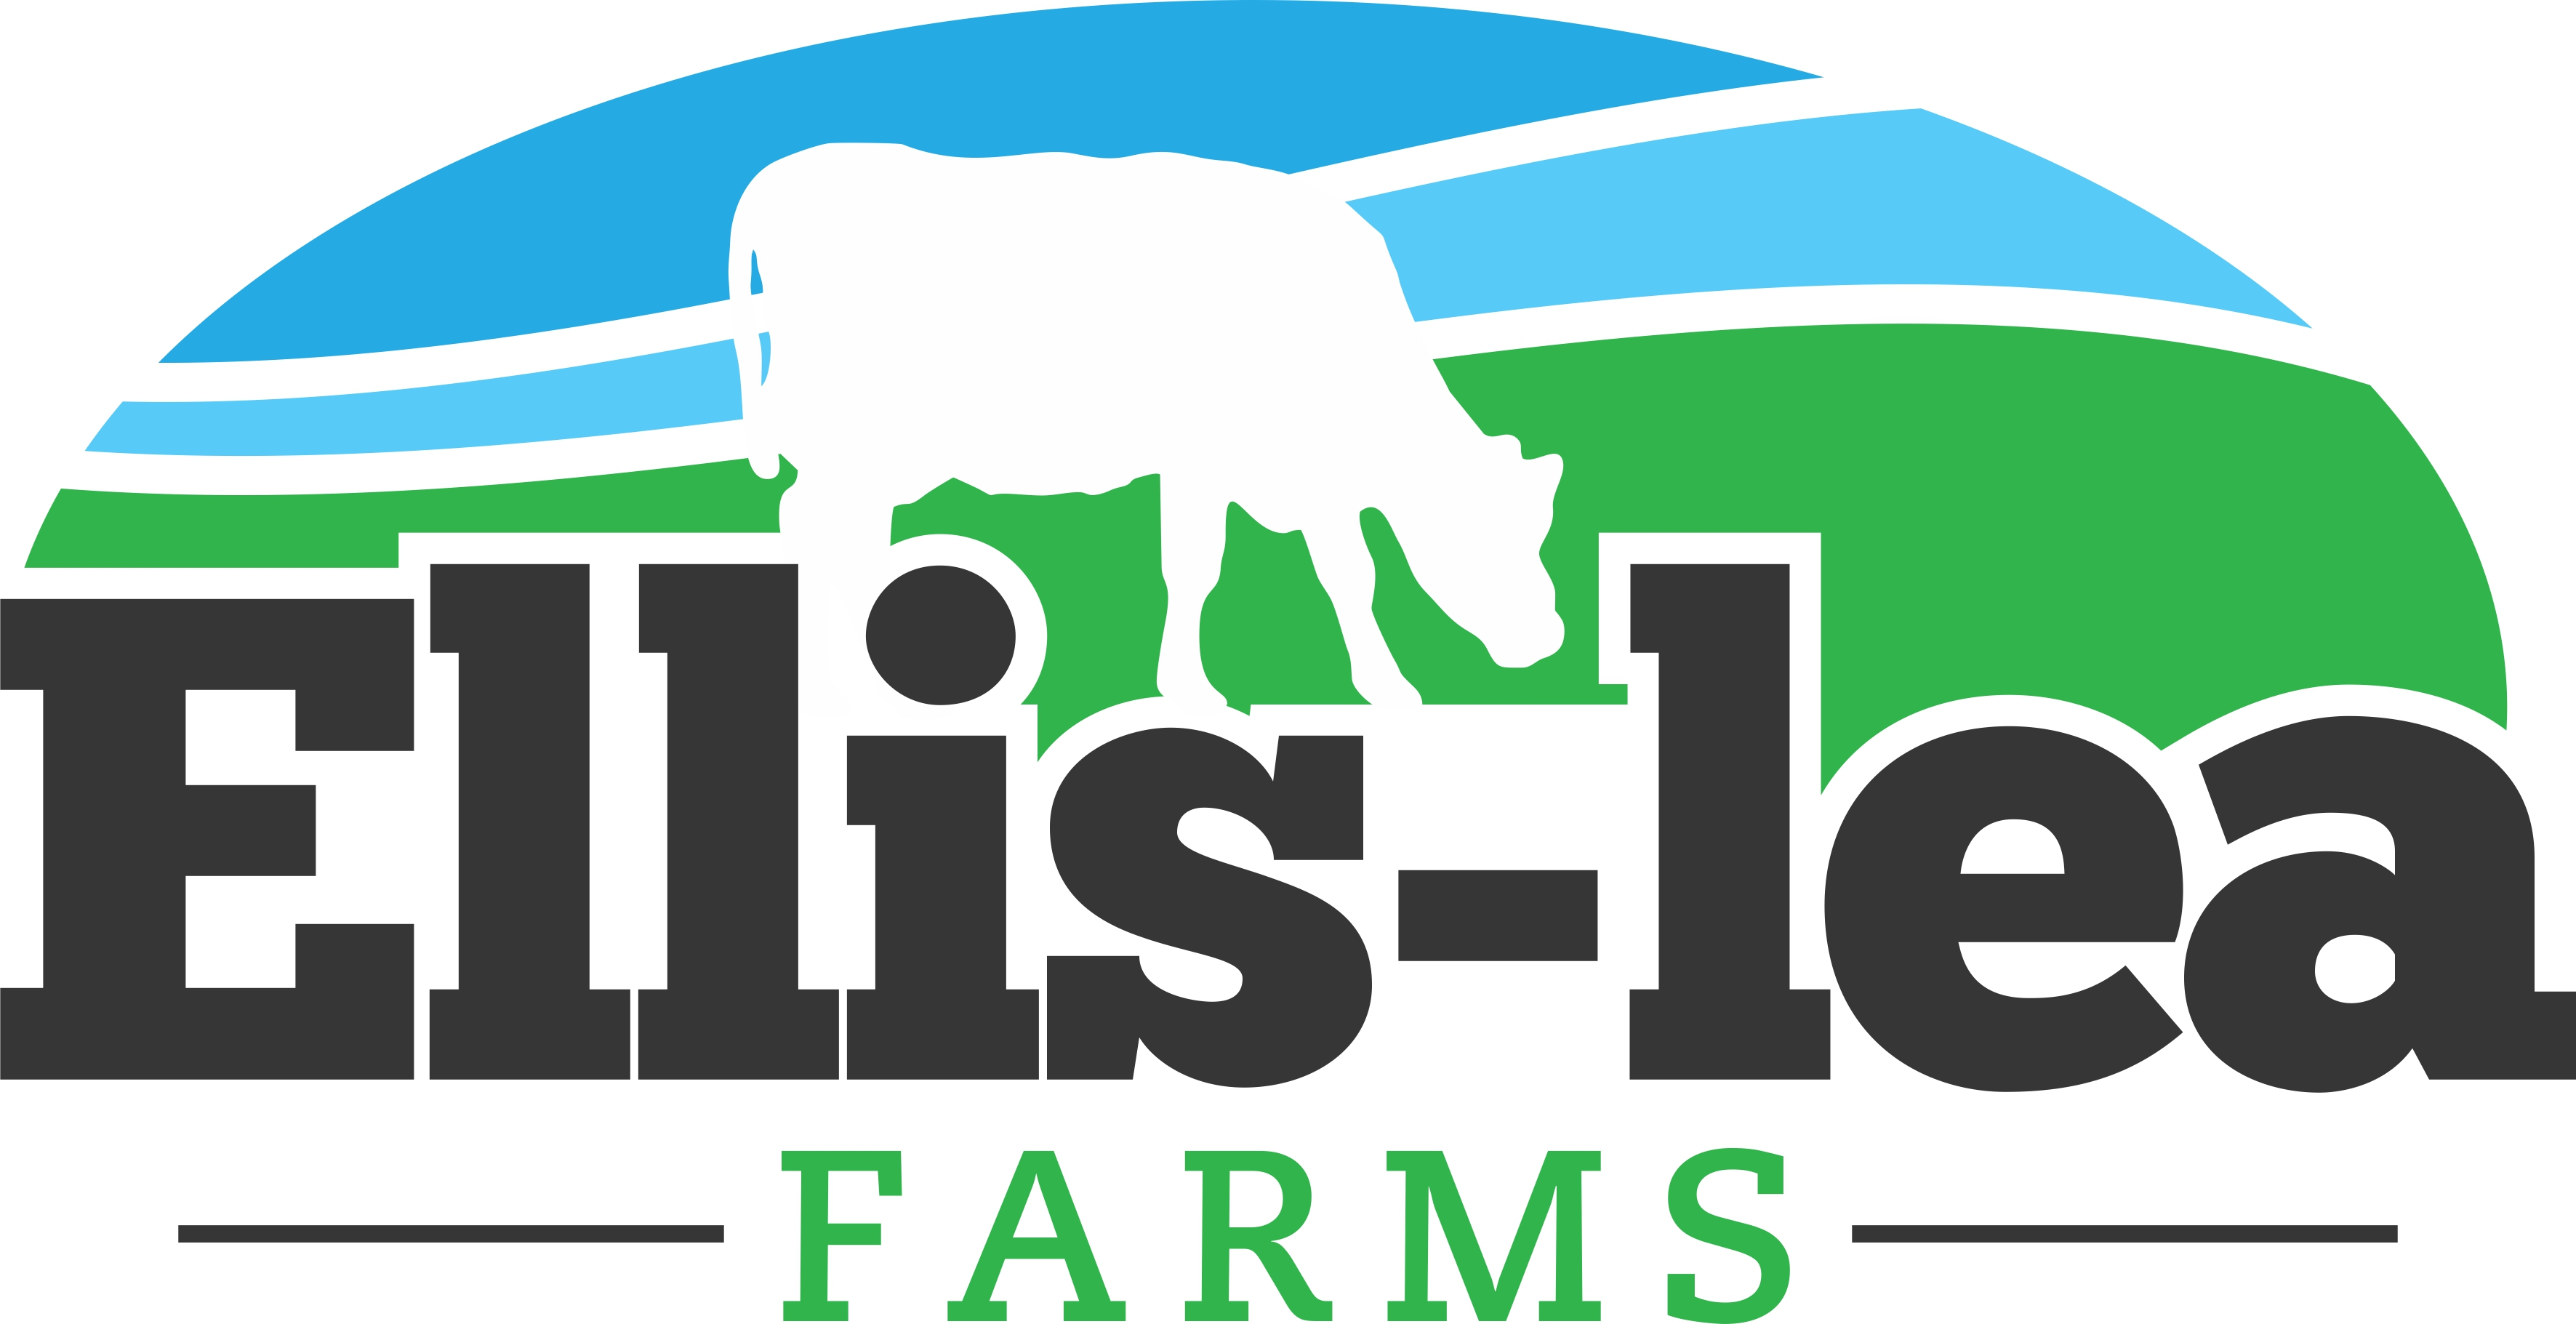 Ellis-Lea Farms